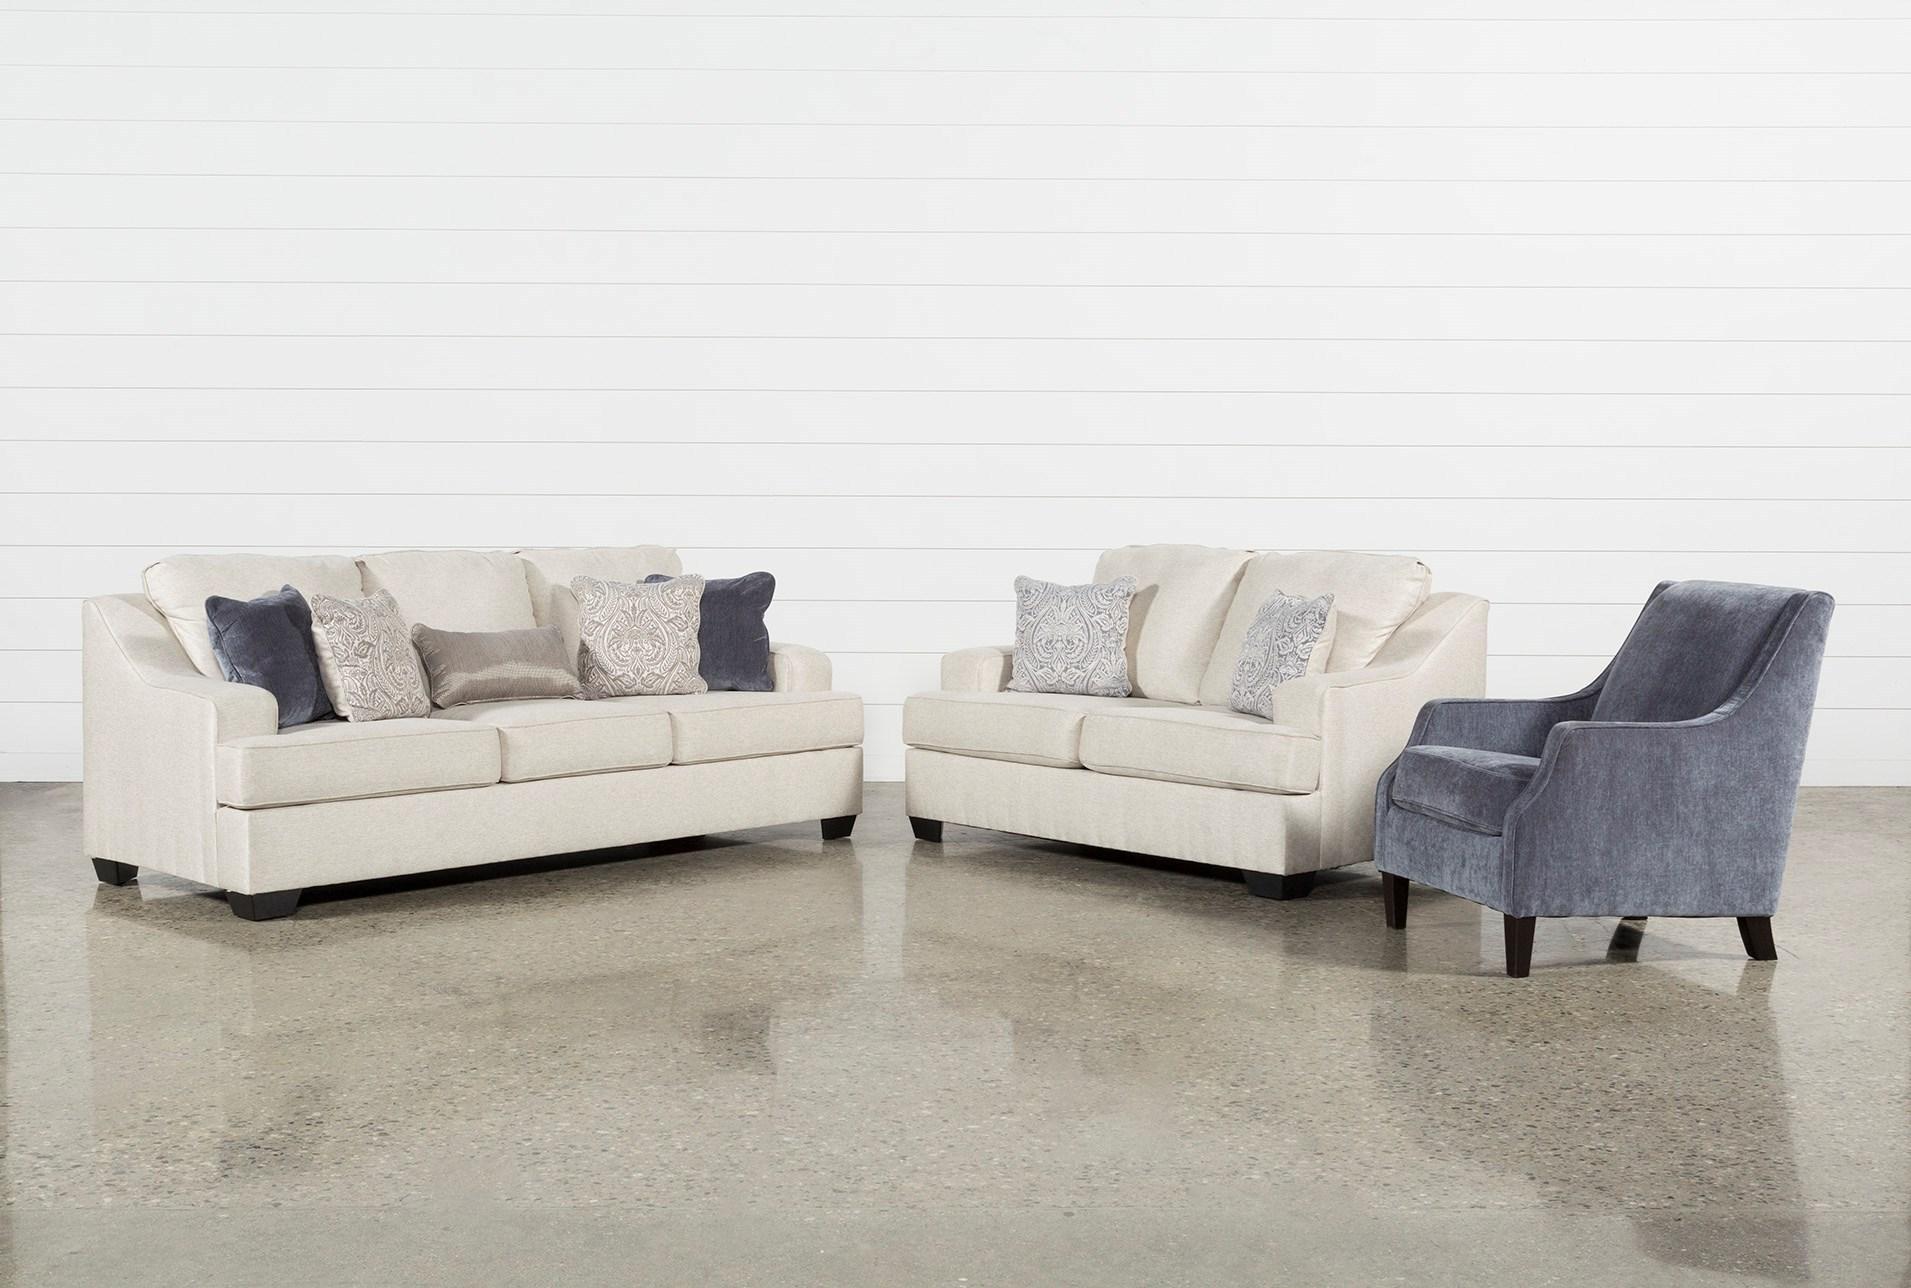 brumbeck piece living room set with accent chair spaces beige fabric three chairs table qty has been successfully your cart unique sofas target vizio sound bar gray chest small